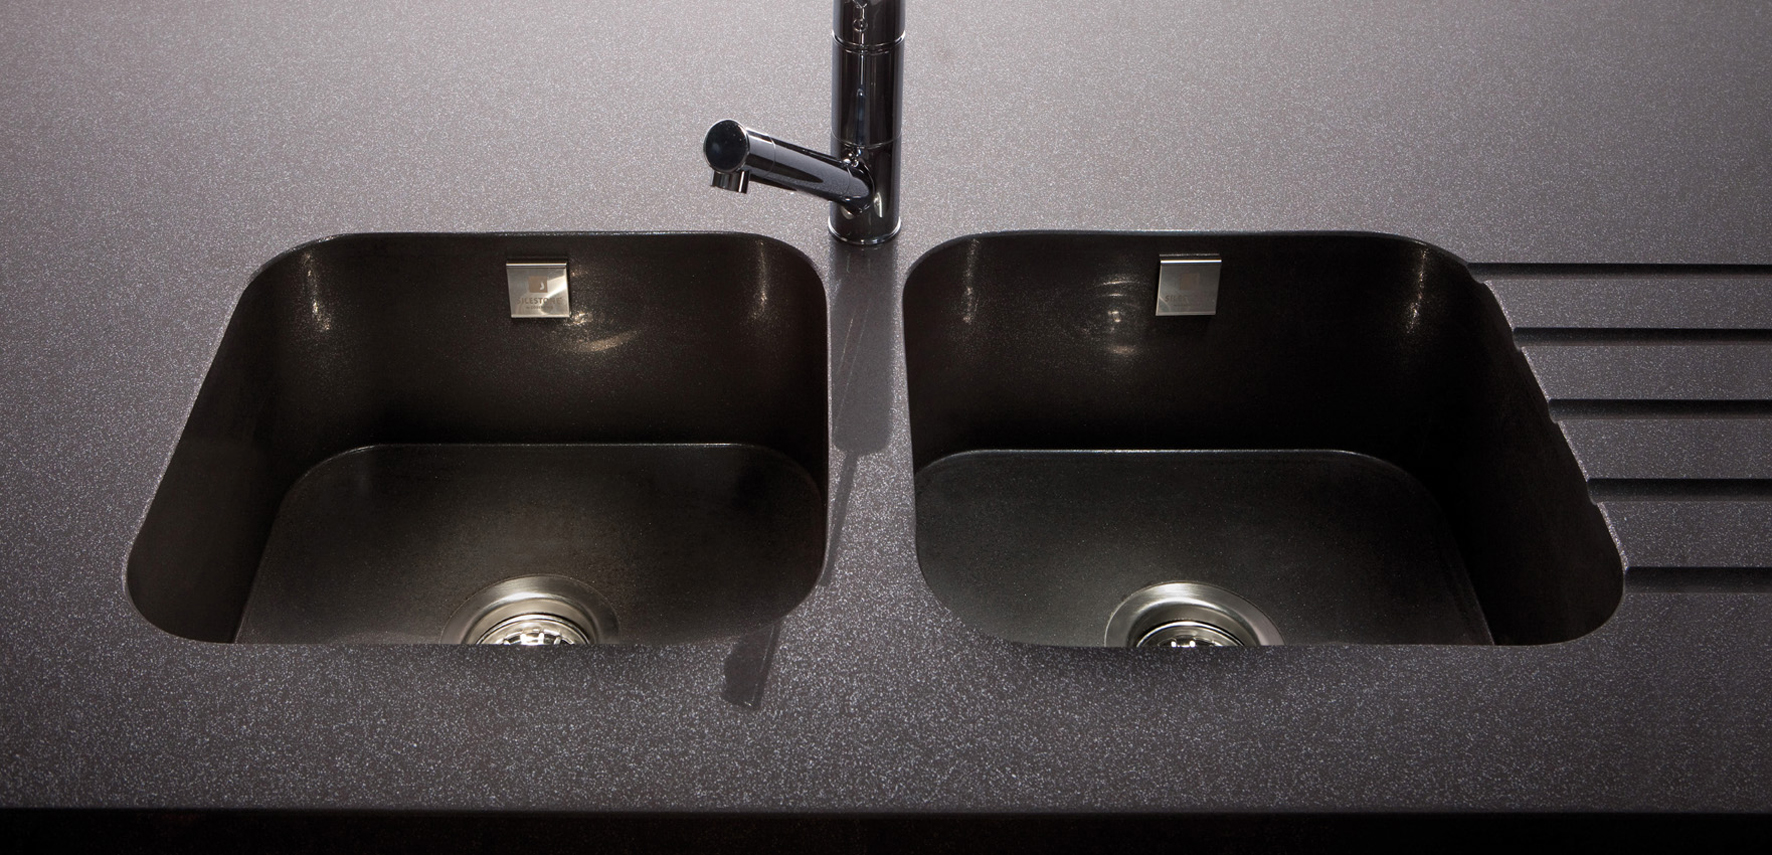 Cosentino Uk Silestone Introduces Two New Sinks Into Its